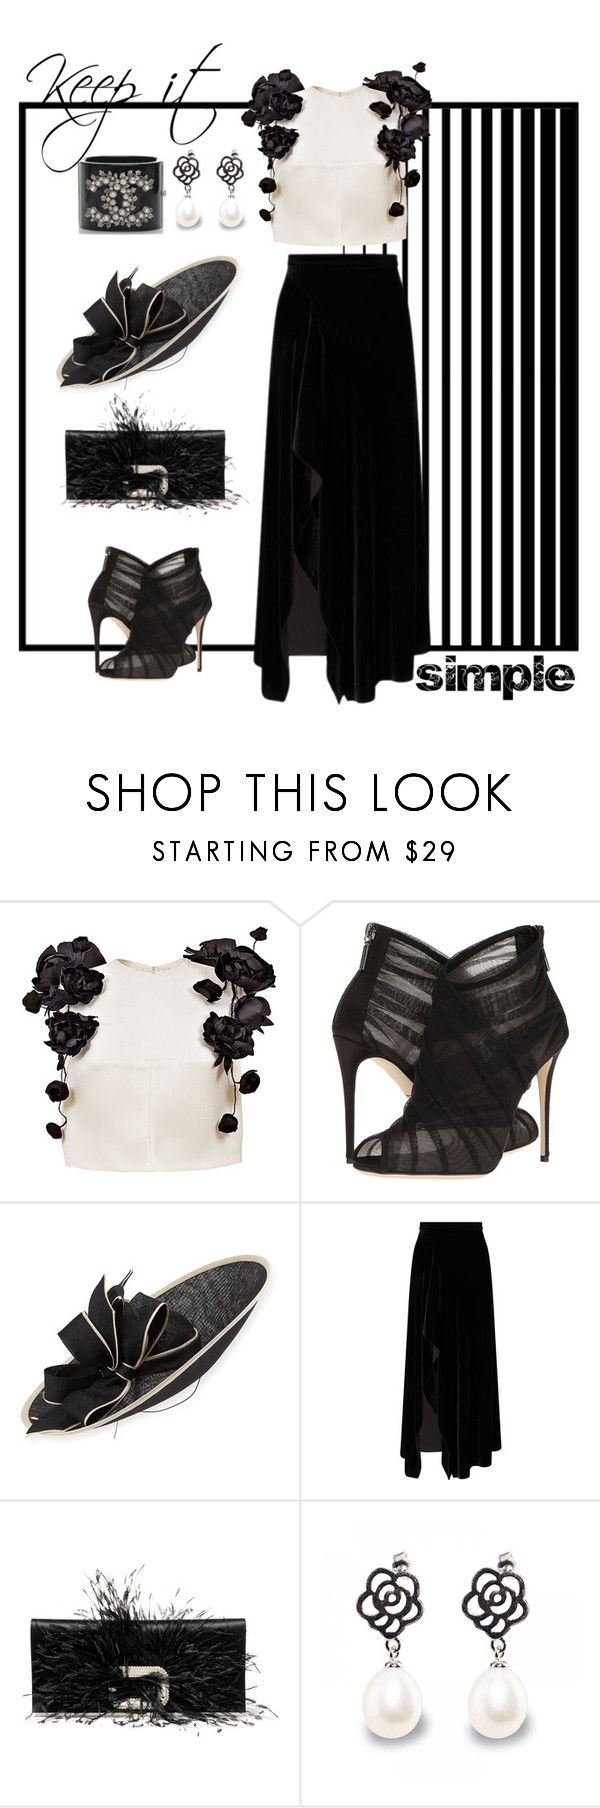 """""""Keep it simple"""" by molly-072 ❤ liked on Polyvore featuring Esme Vie, Dolce&Gabbana, Rachel Trevor-Morgan, Roland Mouret and Roger Vivier"""